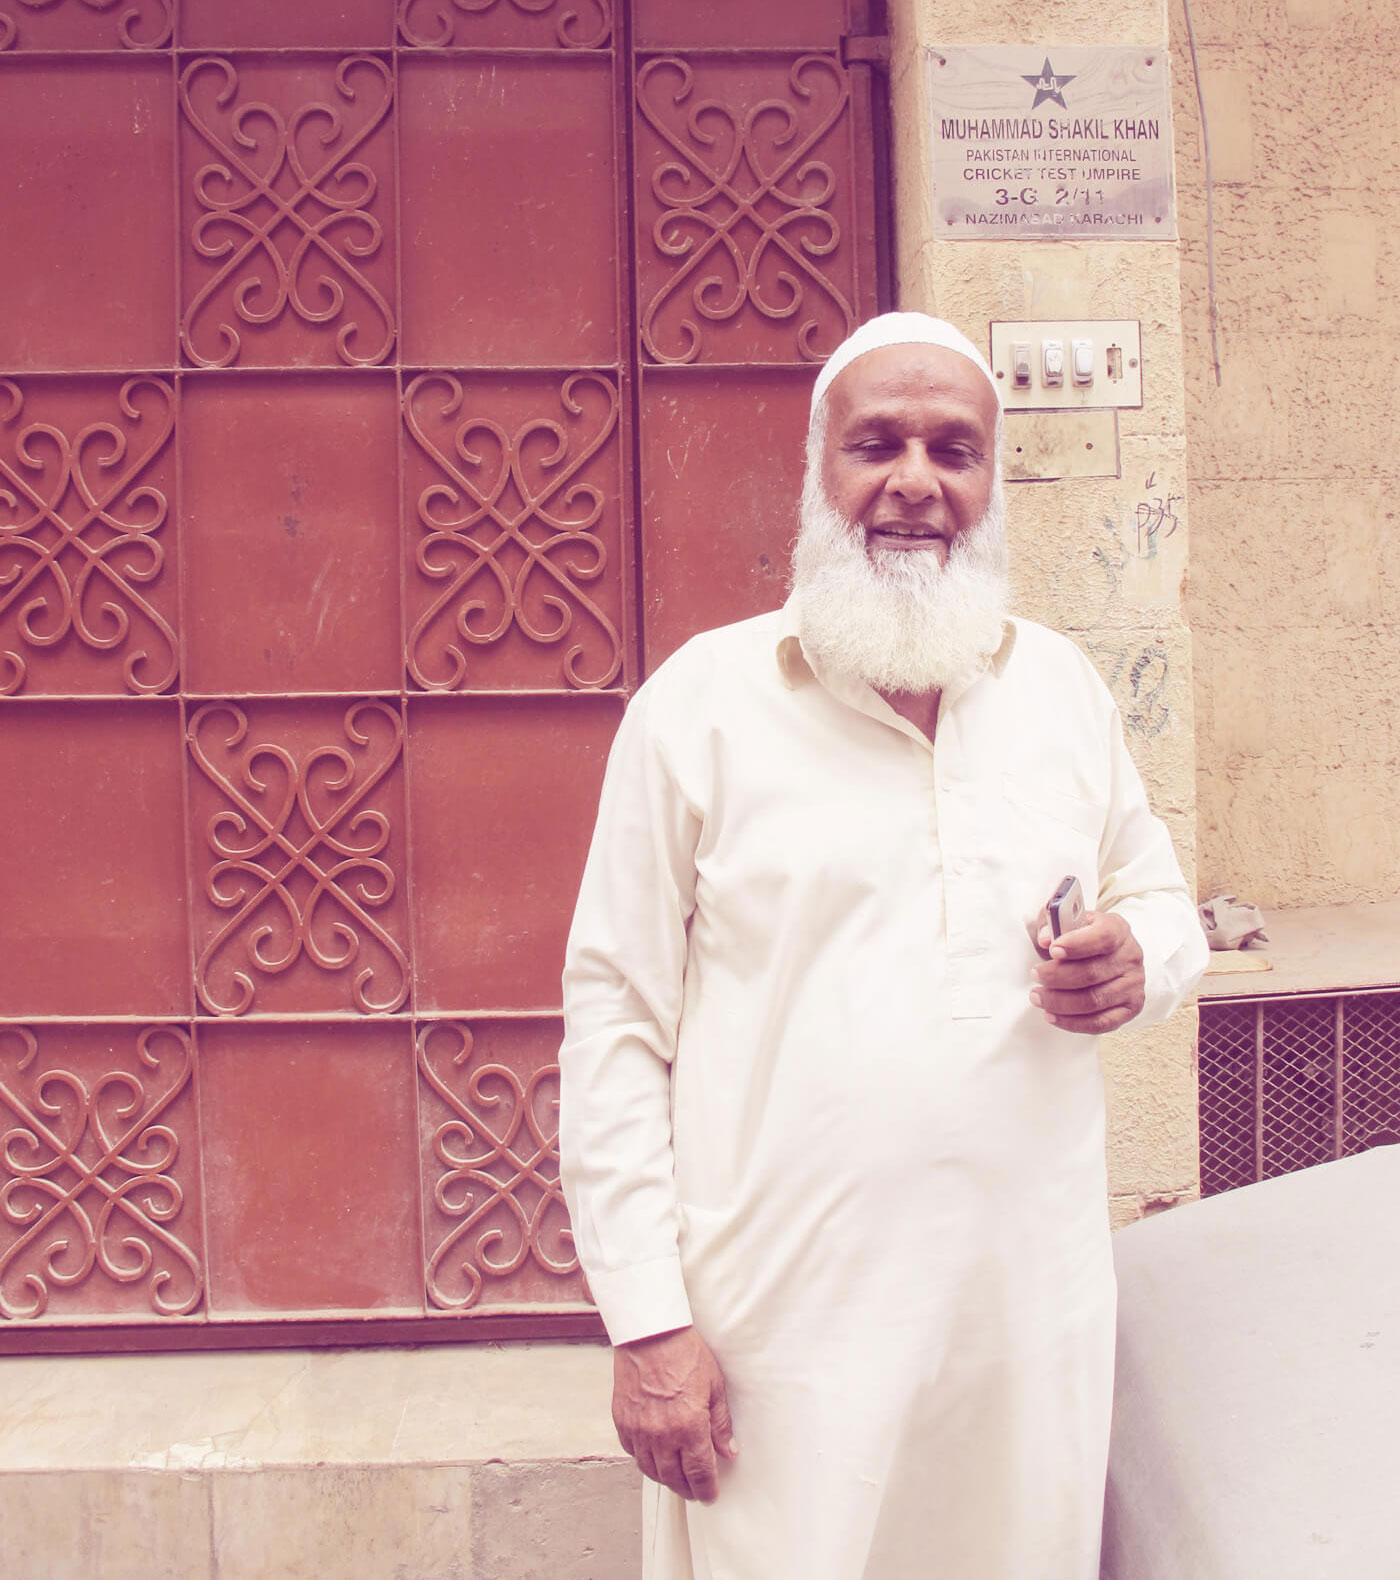 Former Pakistan umpire Shakeel Khan, a Nazimabad local, first saw a tape-ball game back in 1978